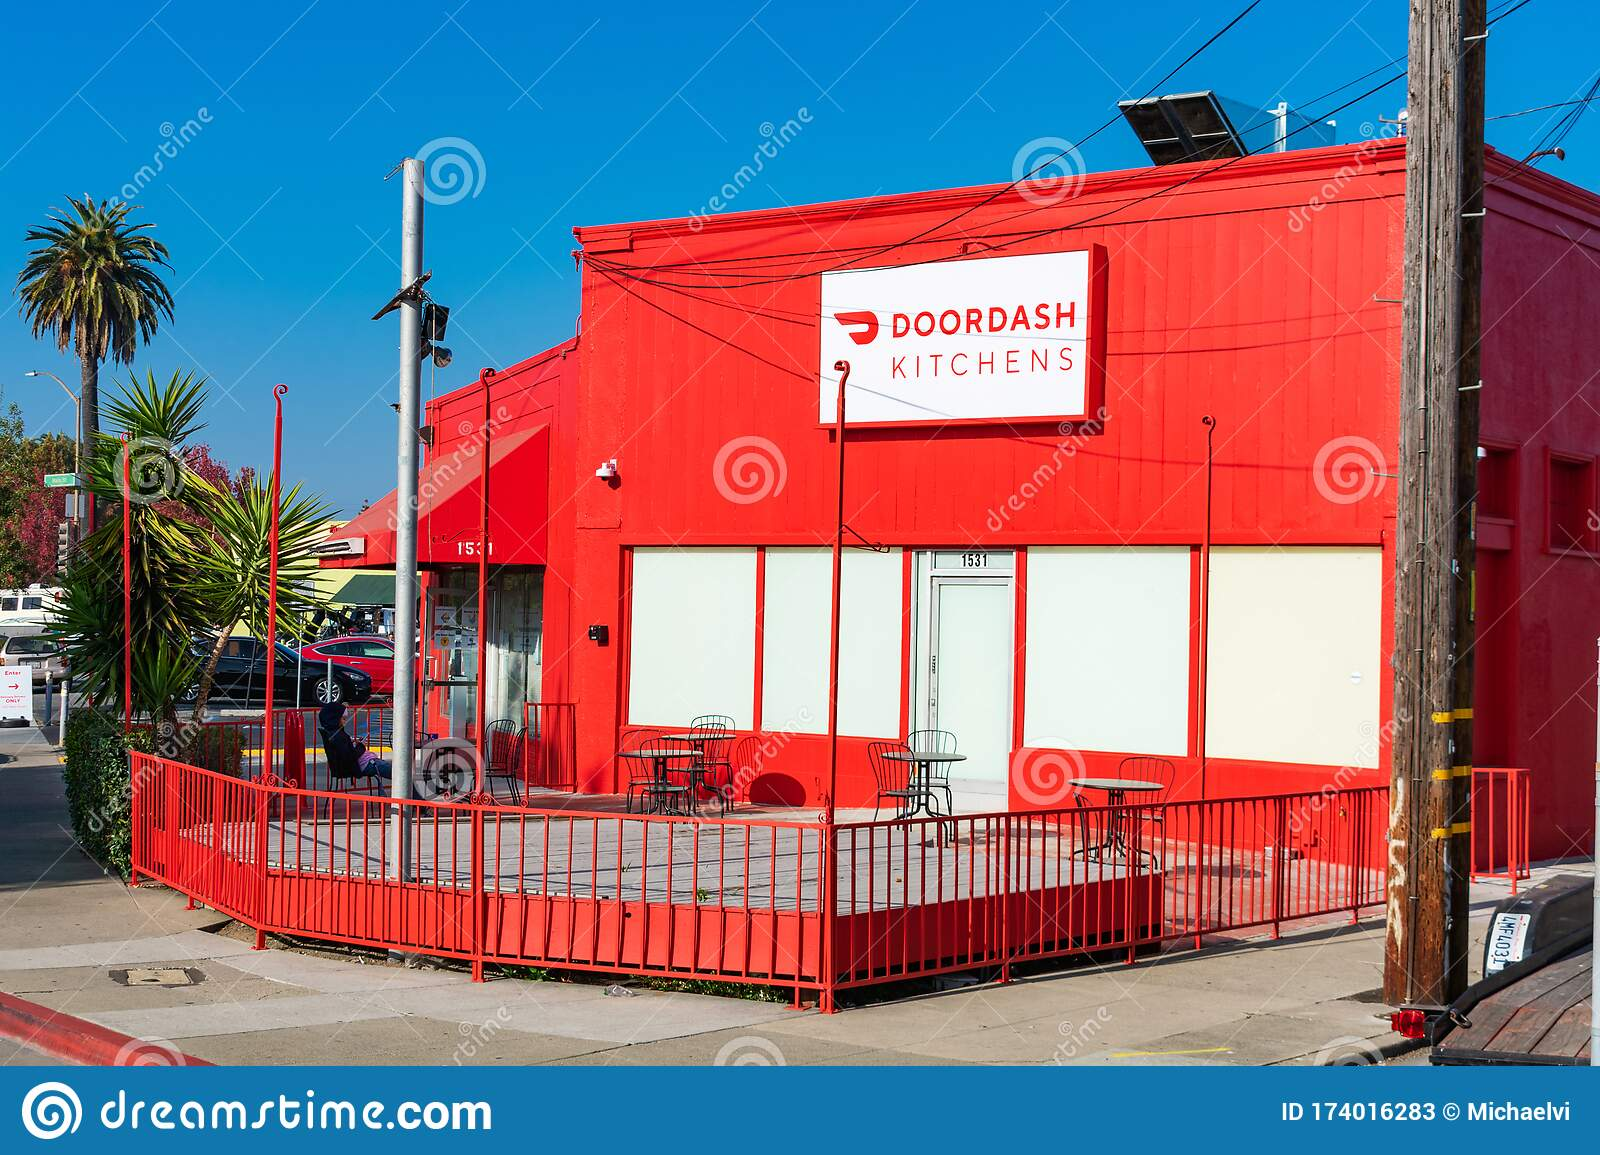 Doordash Kitchens Storefront Doordash Kitchens Is Shared Ghost Kitchen Model Of On Demand Prepared Food Delivery Service Editorial Stock Photo Image Of Online Delivery 174016283